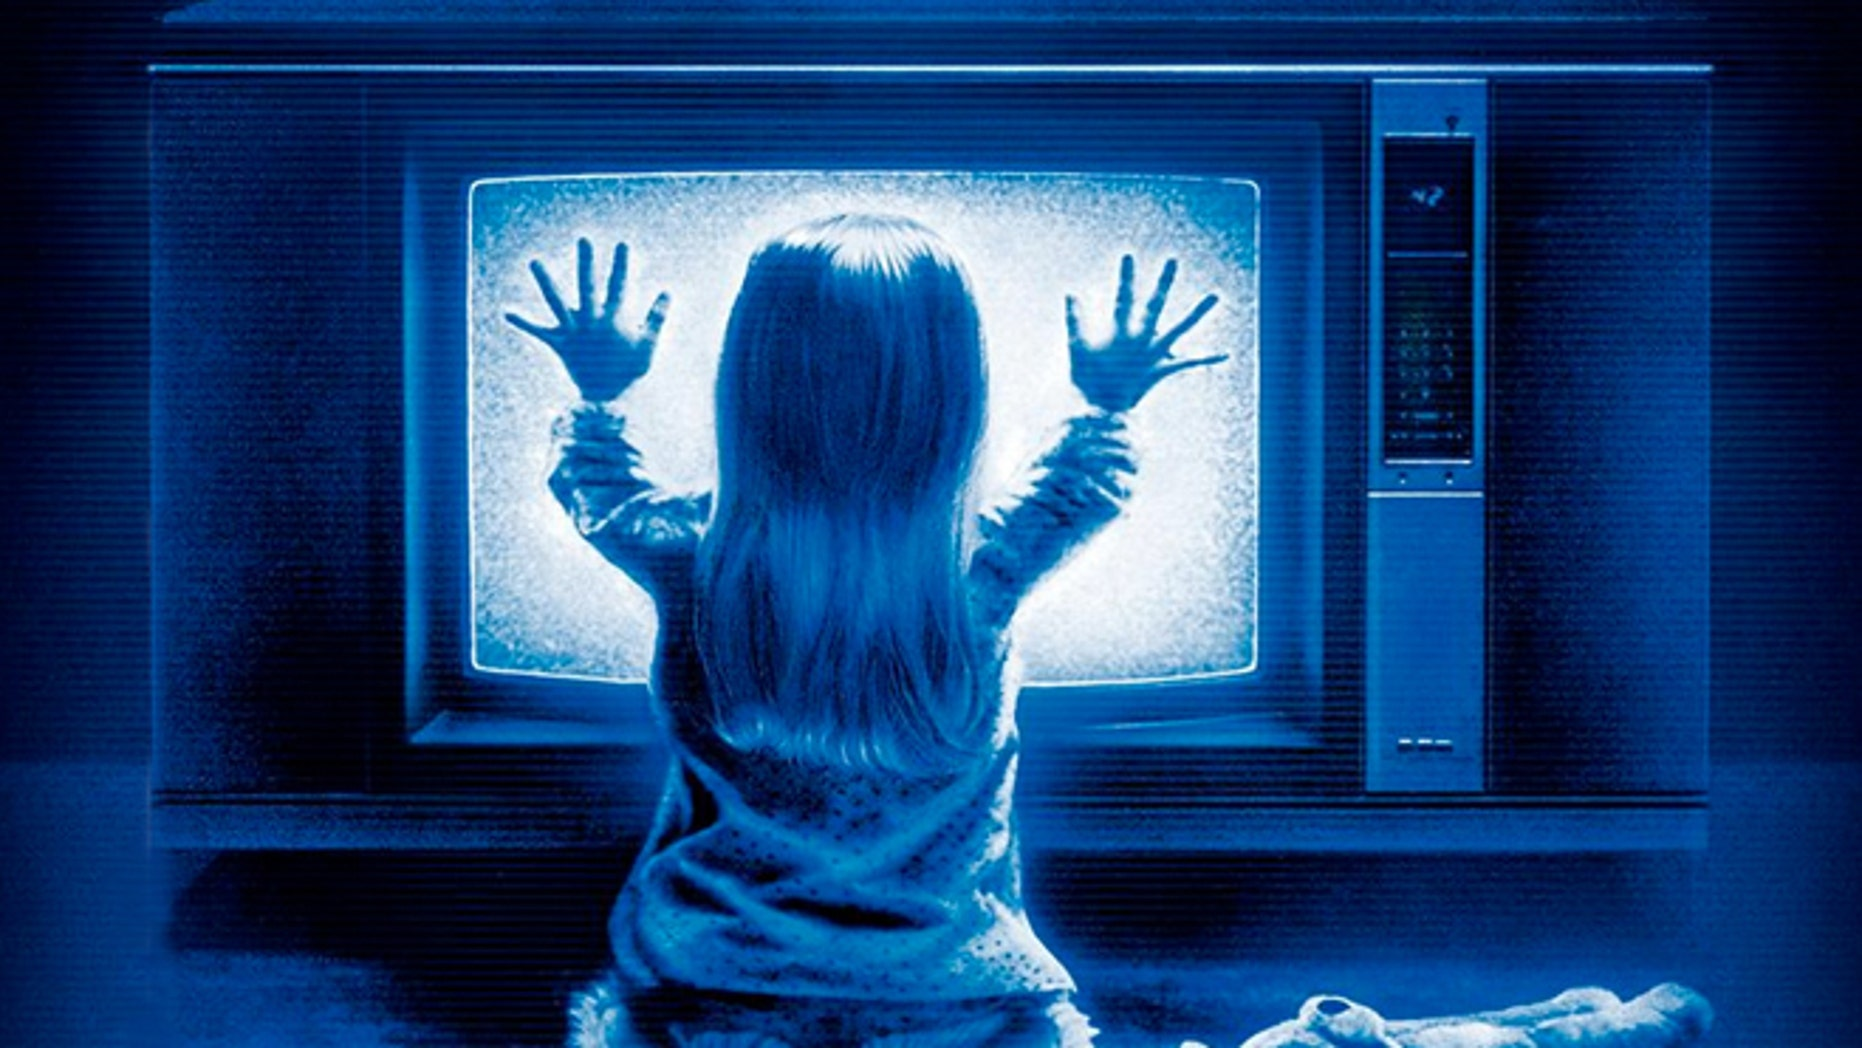 """In the 1982 Steven Spielberg movie """"Poltergeist,"""" demons are watching a family from within their TV. Who's watching through your TV today?"""